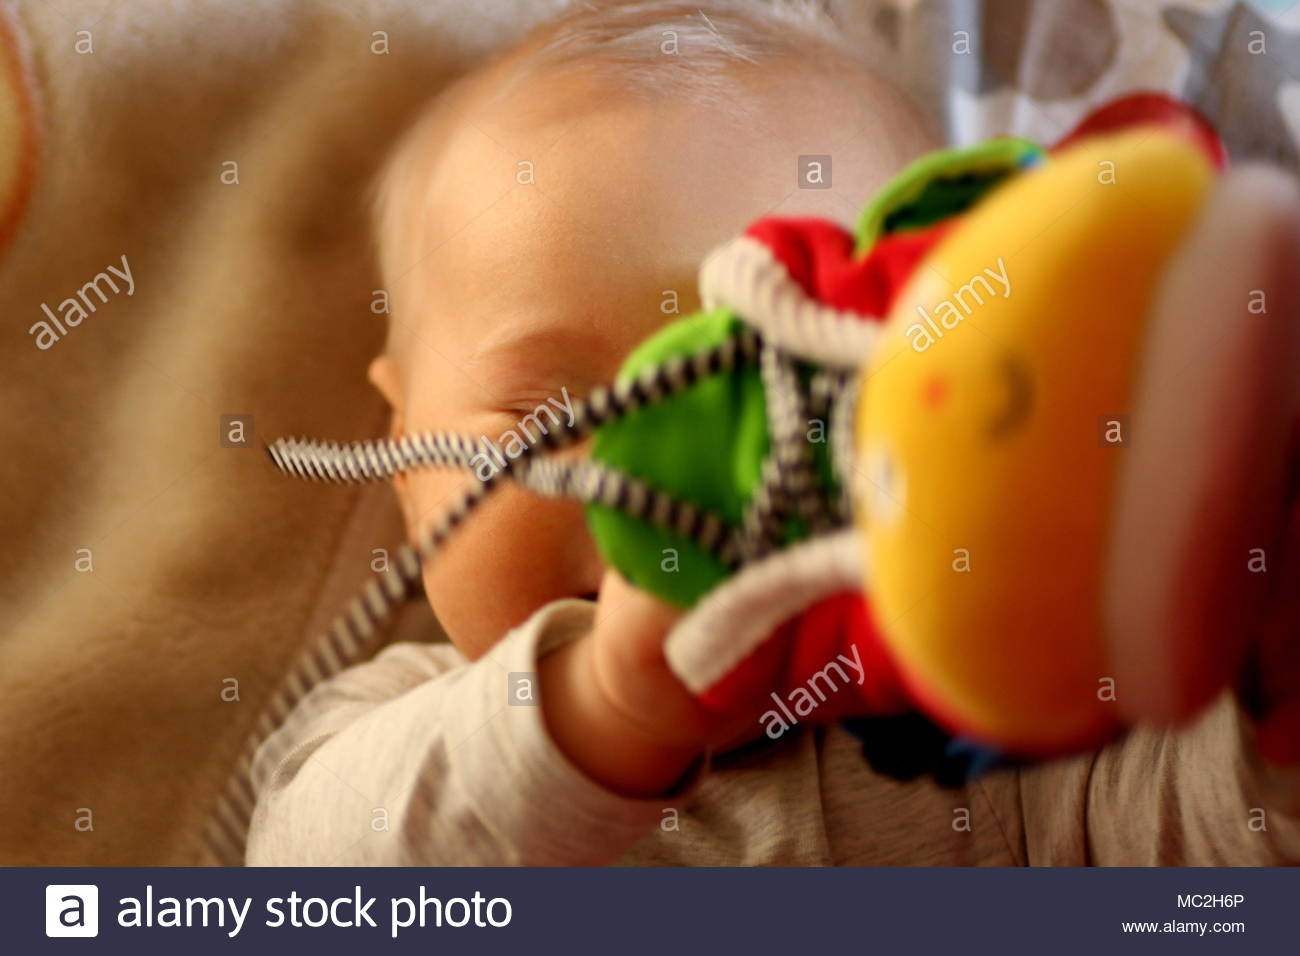 A baby playing with toy - Stock Image